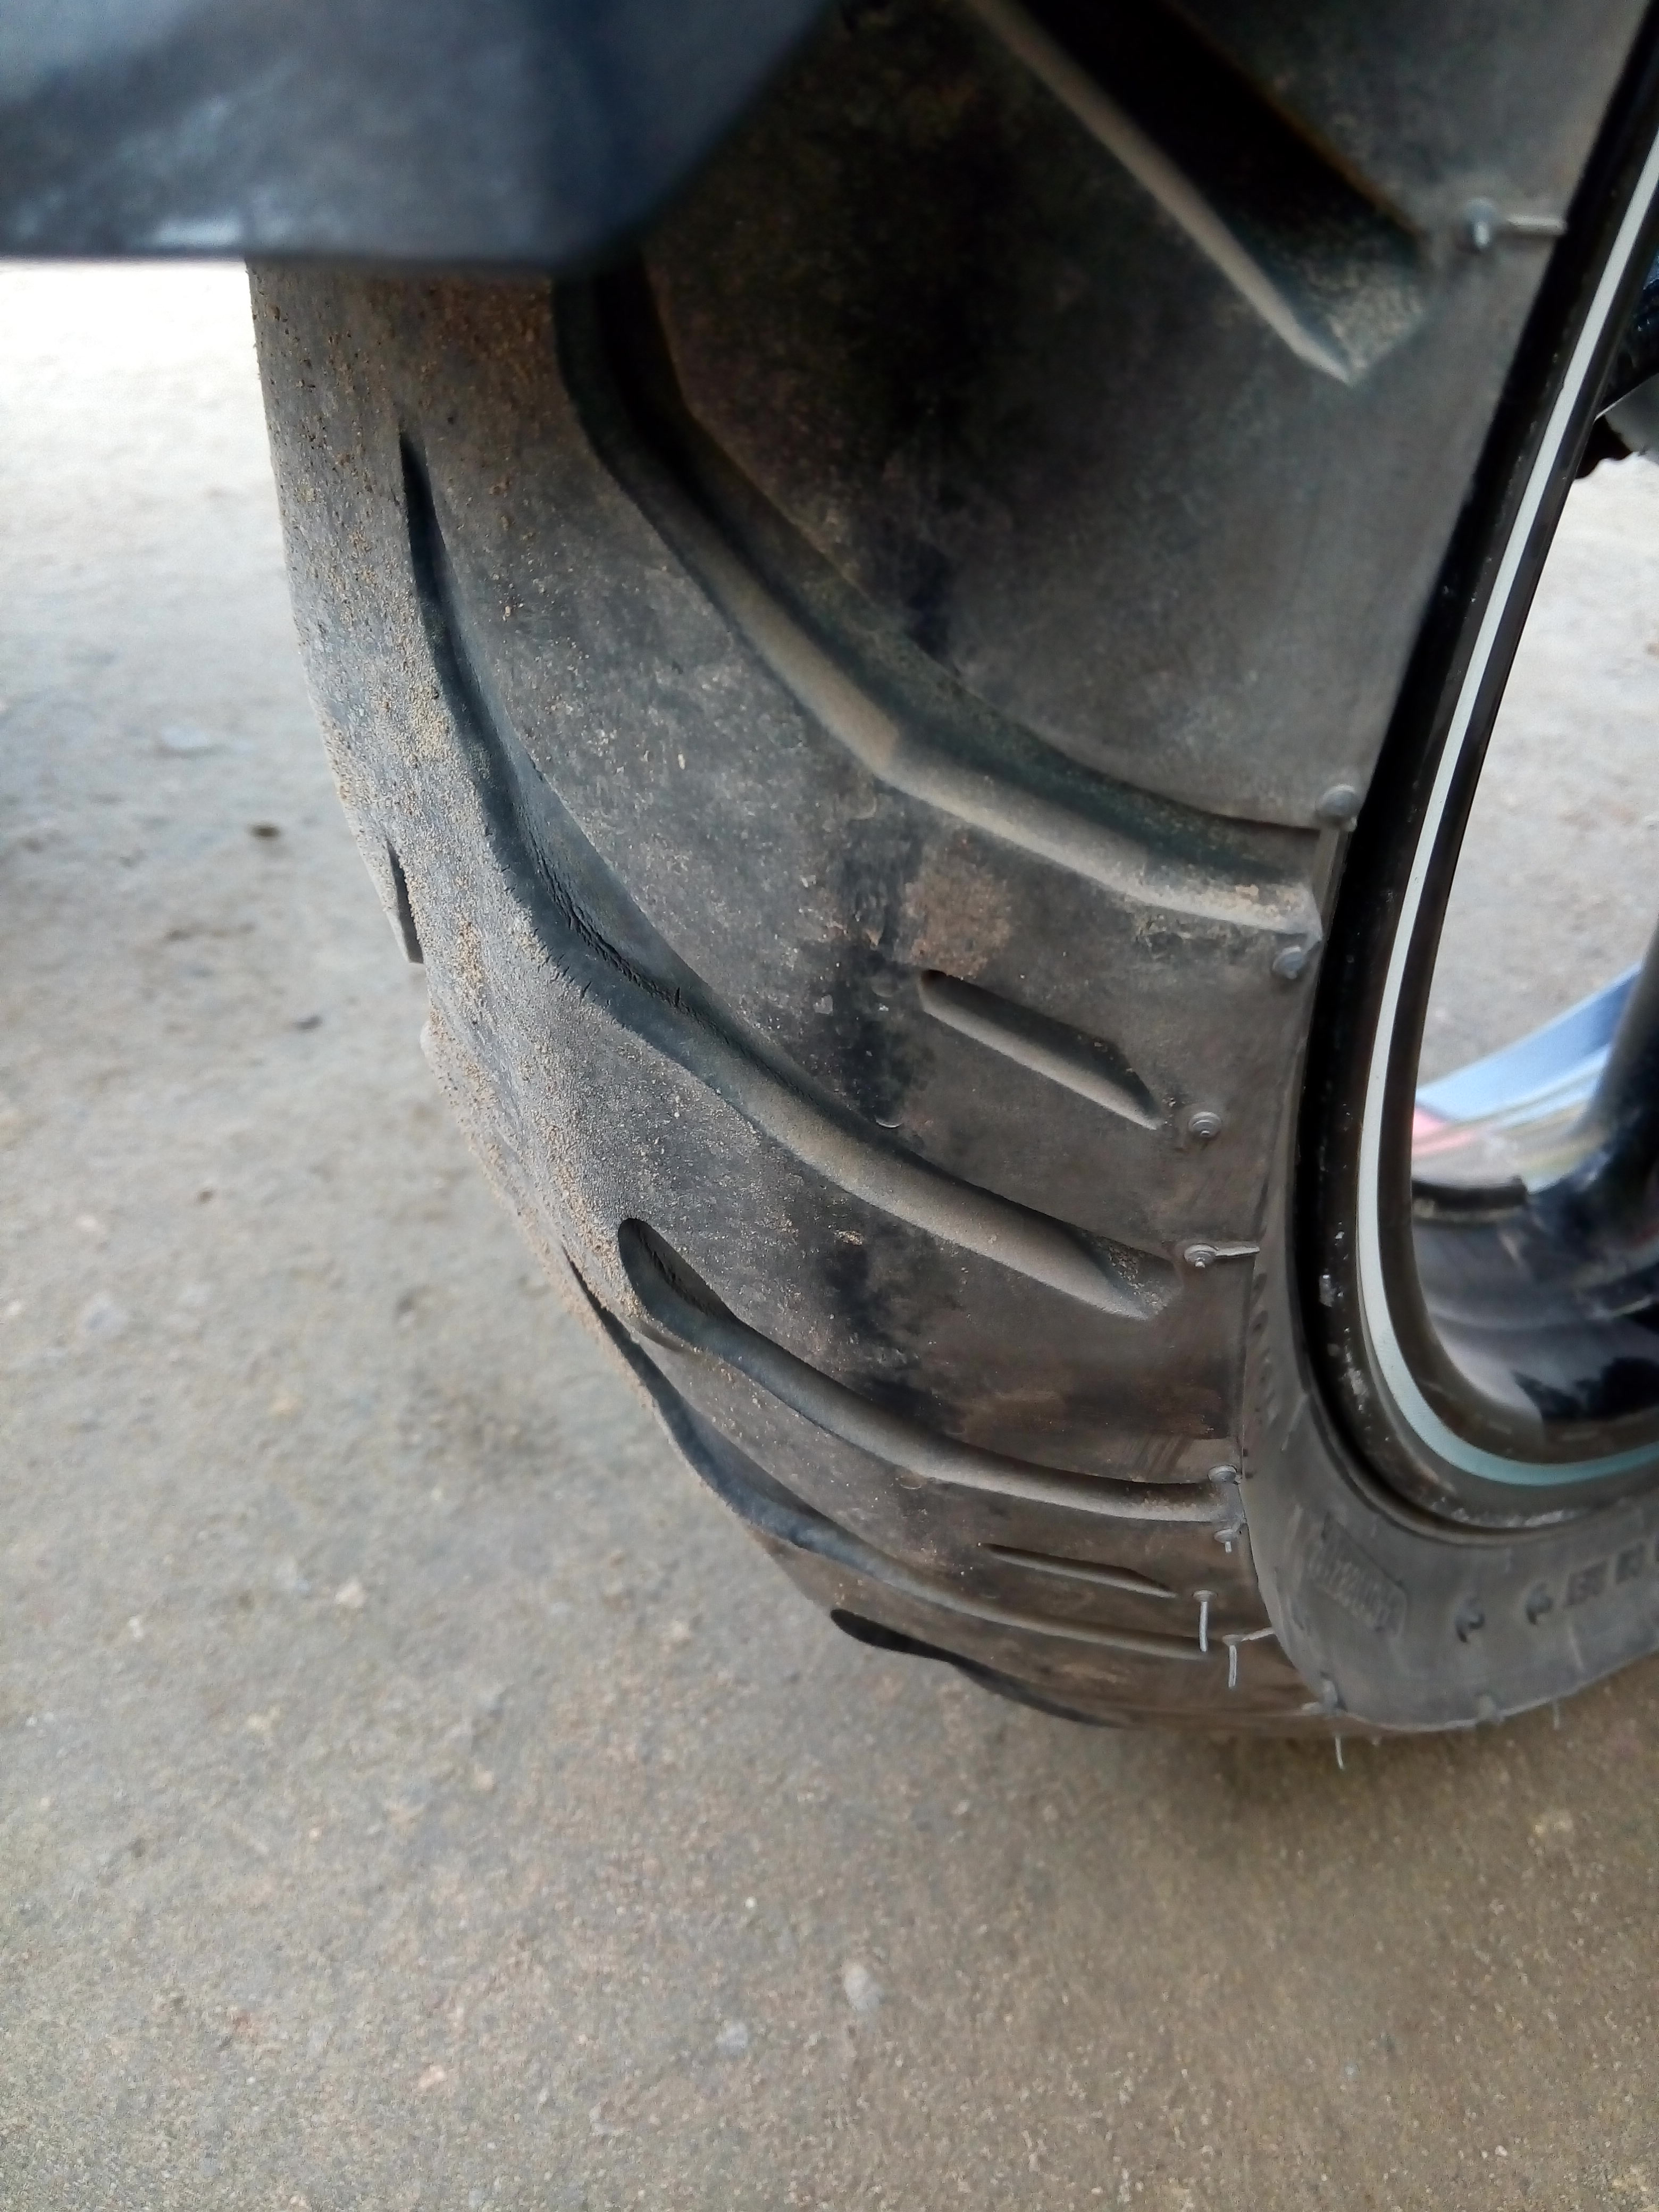 MRF Tyres — frequent puncture of the tyre tube.